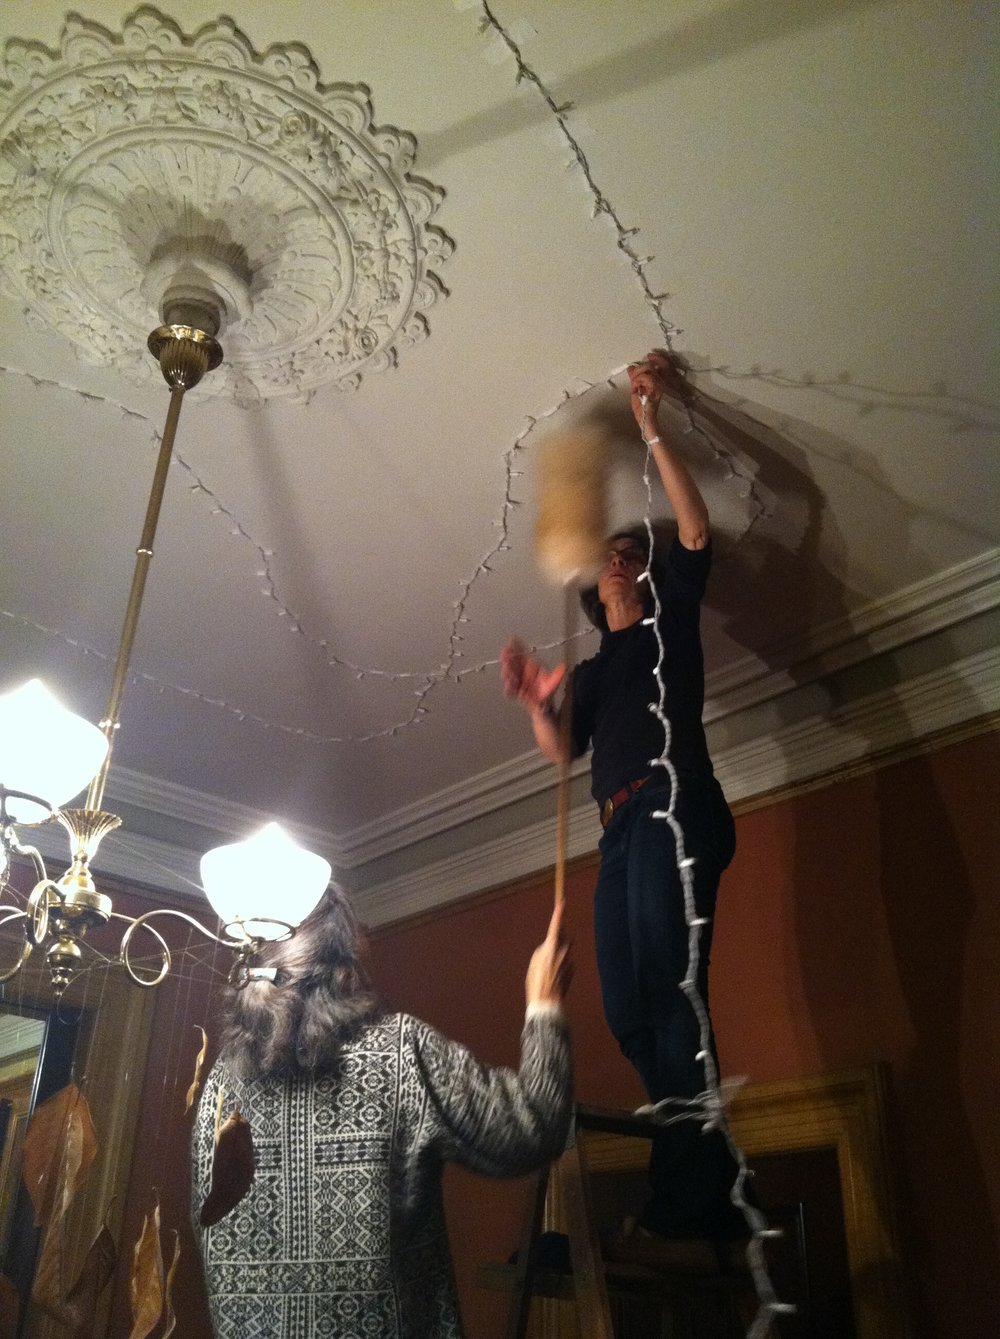 My aunt and mother helping mount lights on the ceiling